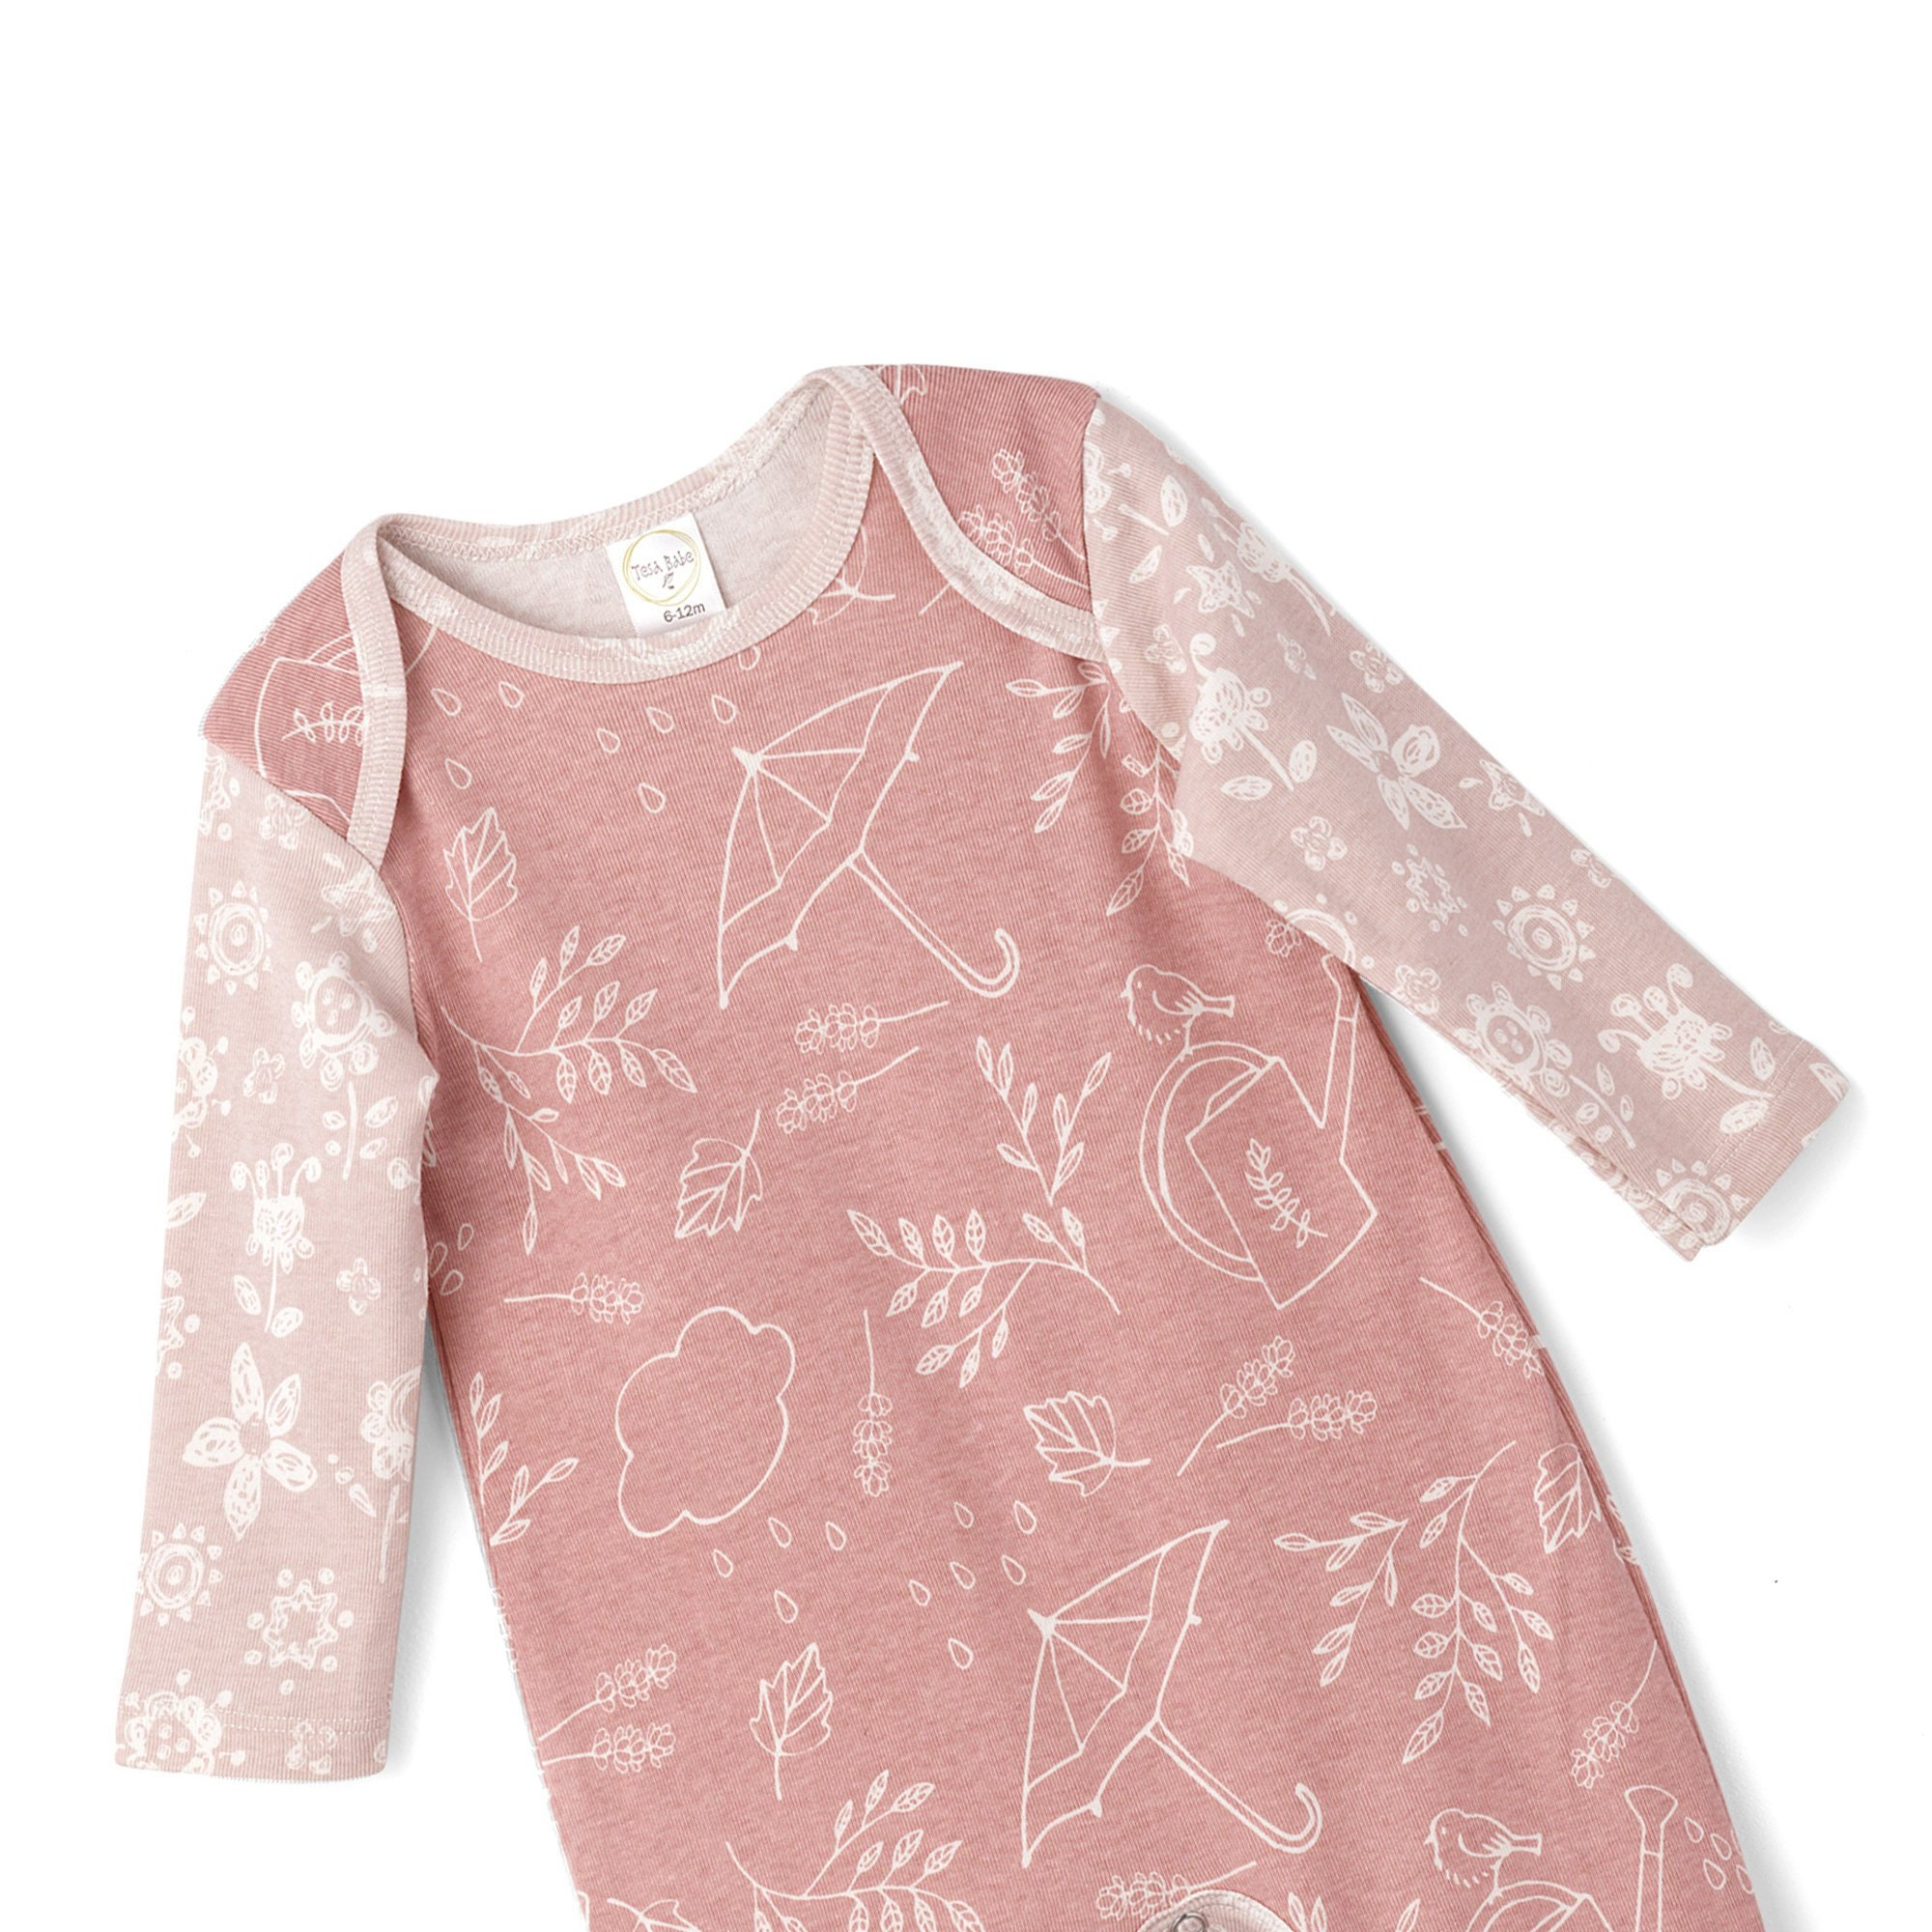 32e7a63af30 Baby Pink Onesie Outfit